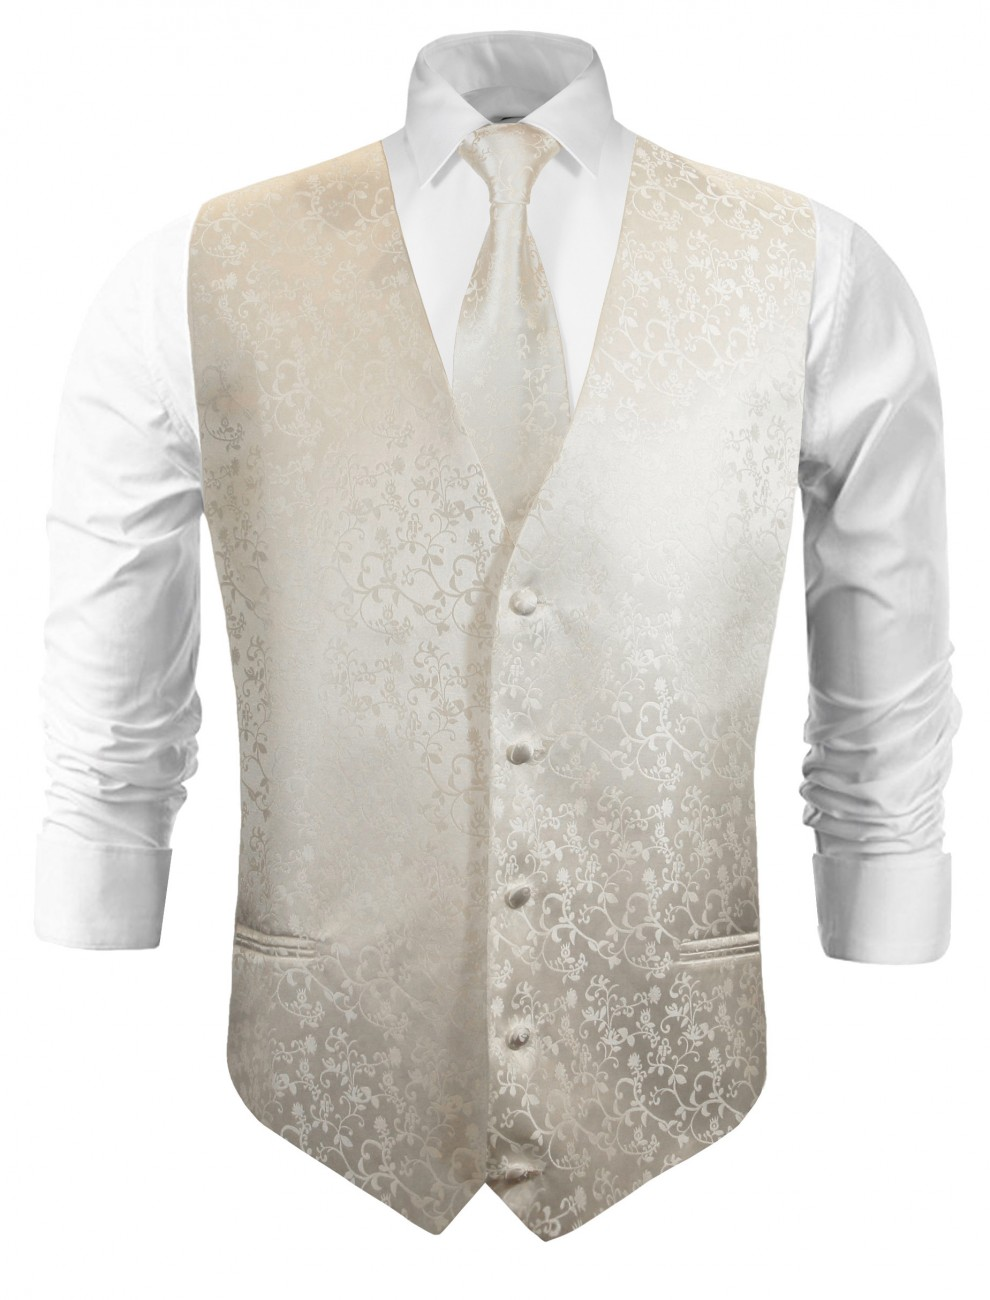 Festive vest with necktie ivory floral